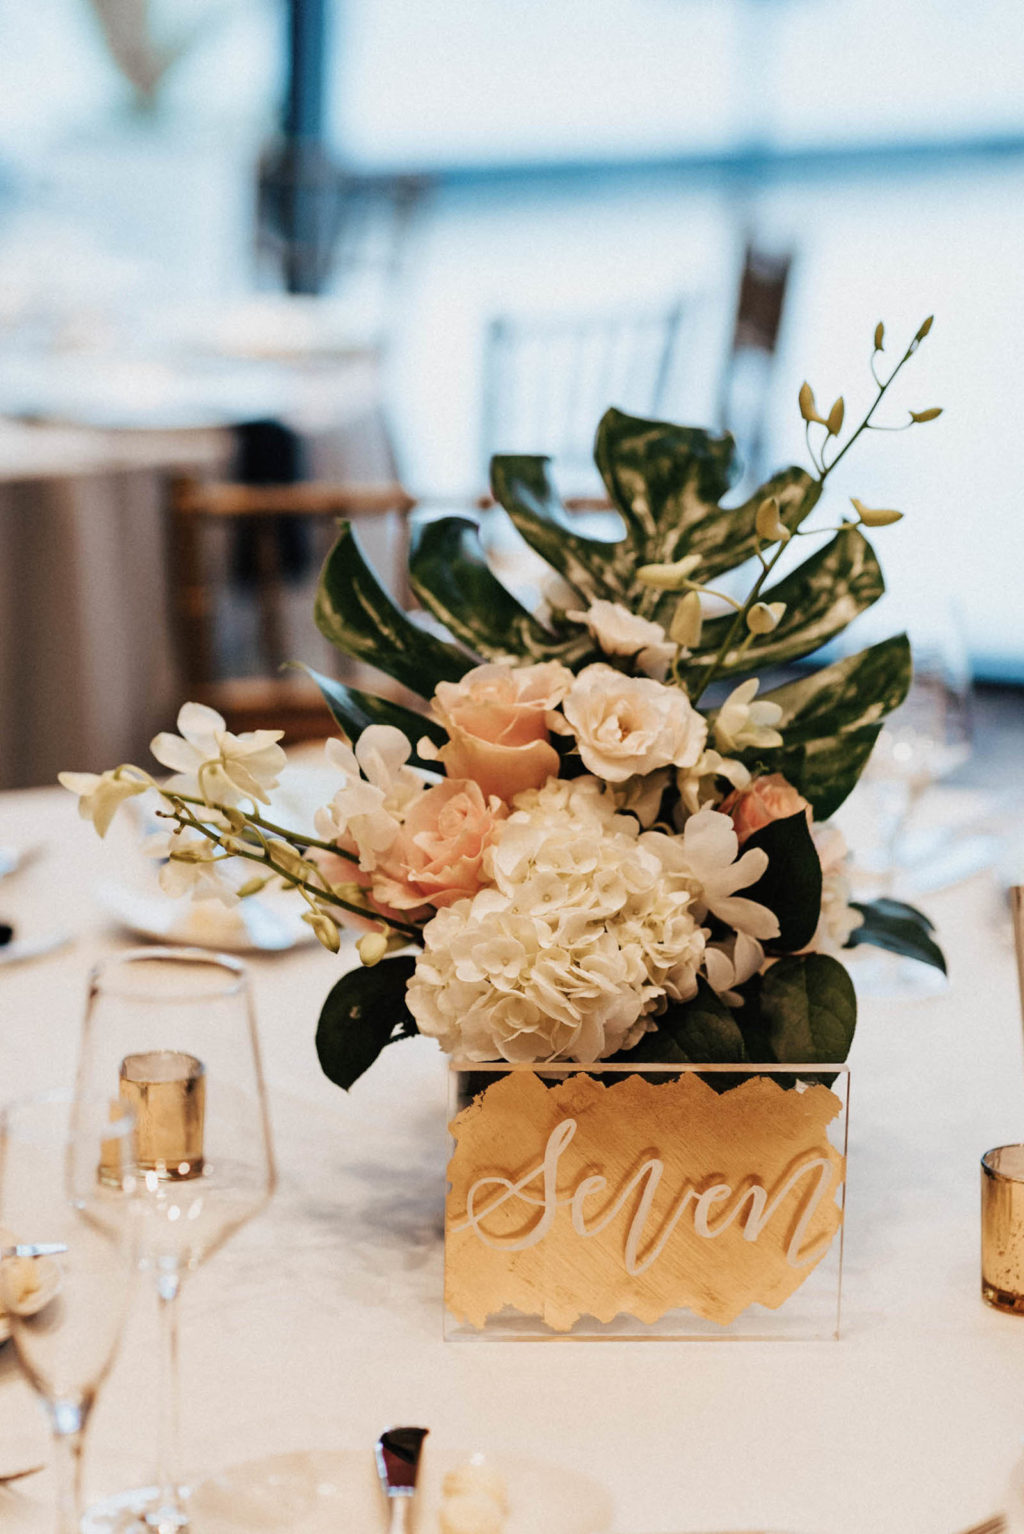 Gold Acrylic Table Numbers with Handwritten Writing | Blush and White Floral Centerpieces with Tropical Greenery